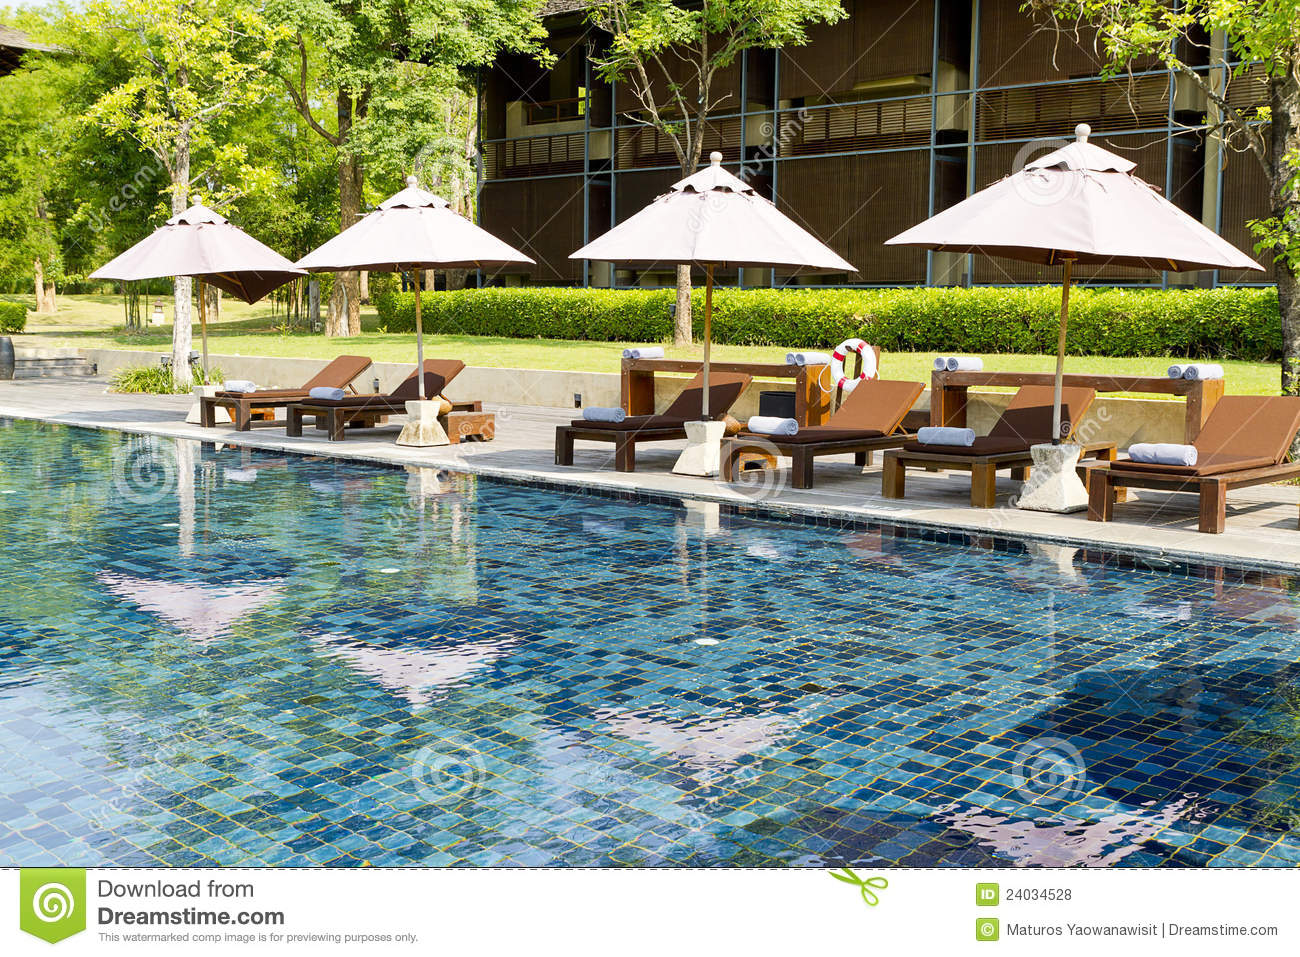 Resort Pool With Beach Chairs And Umbrellas Royalty Free Stock Photos Image 24034528